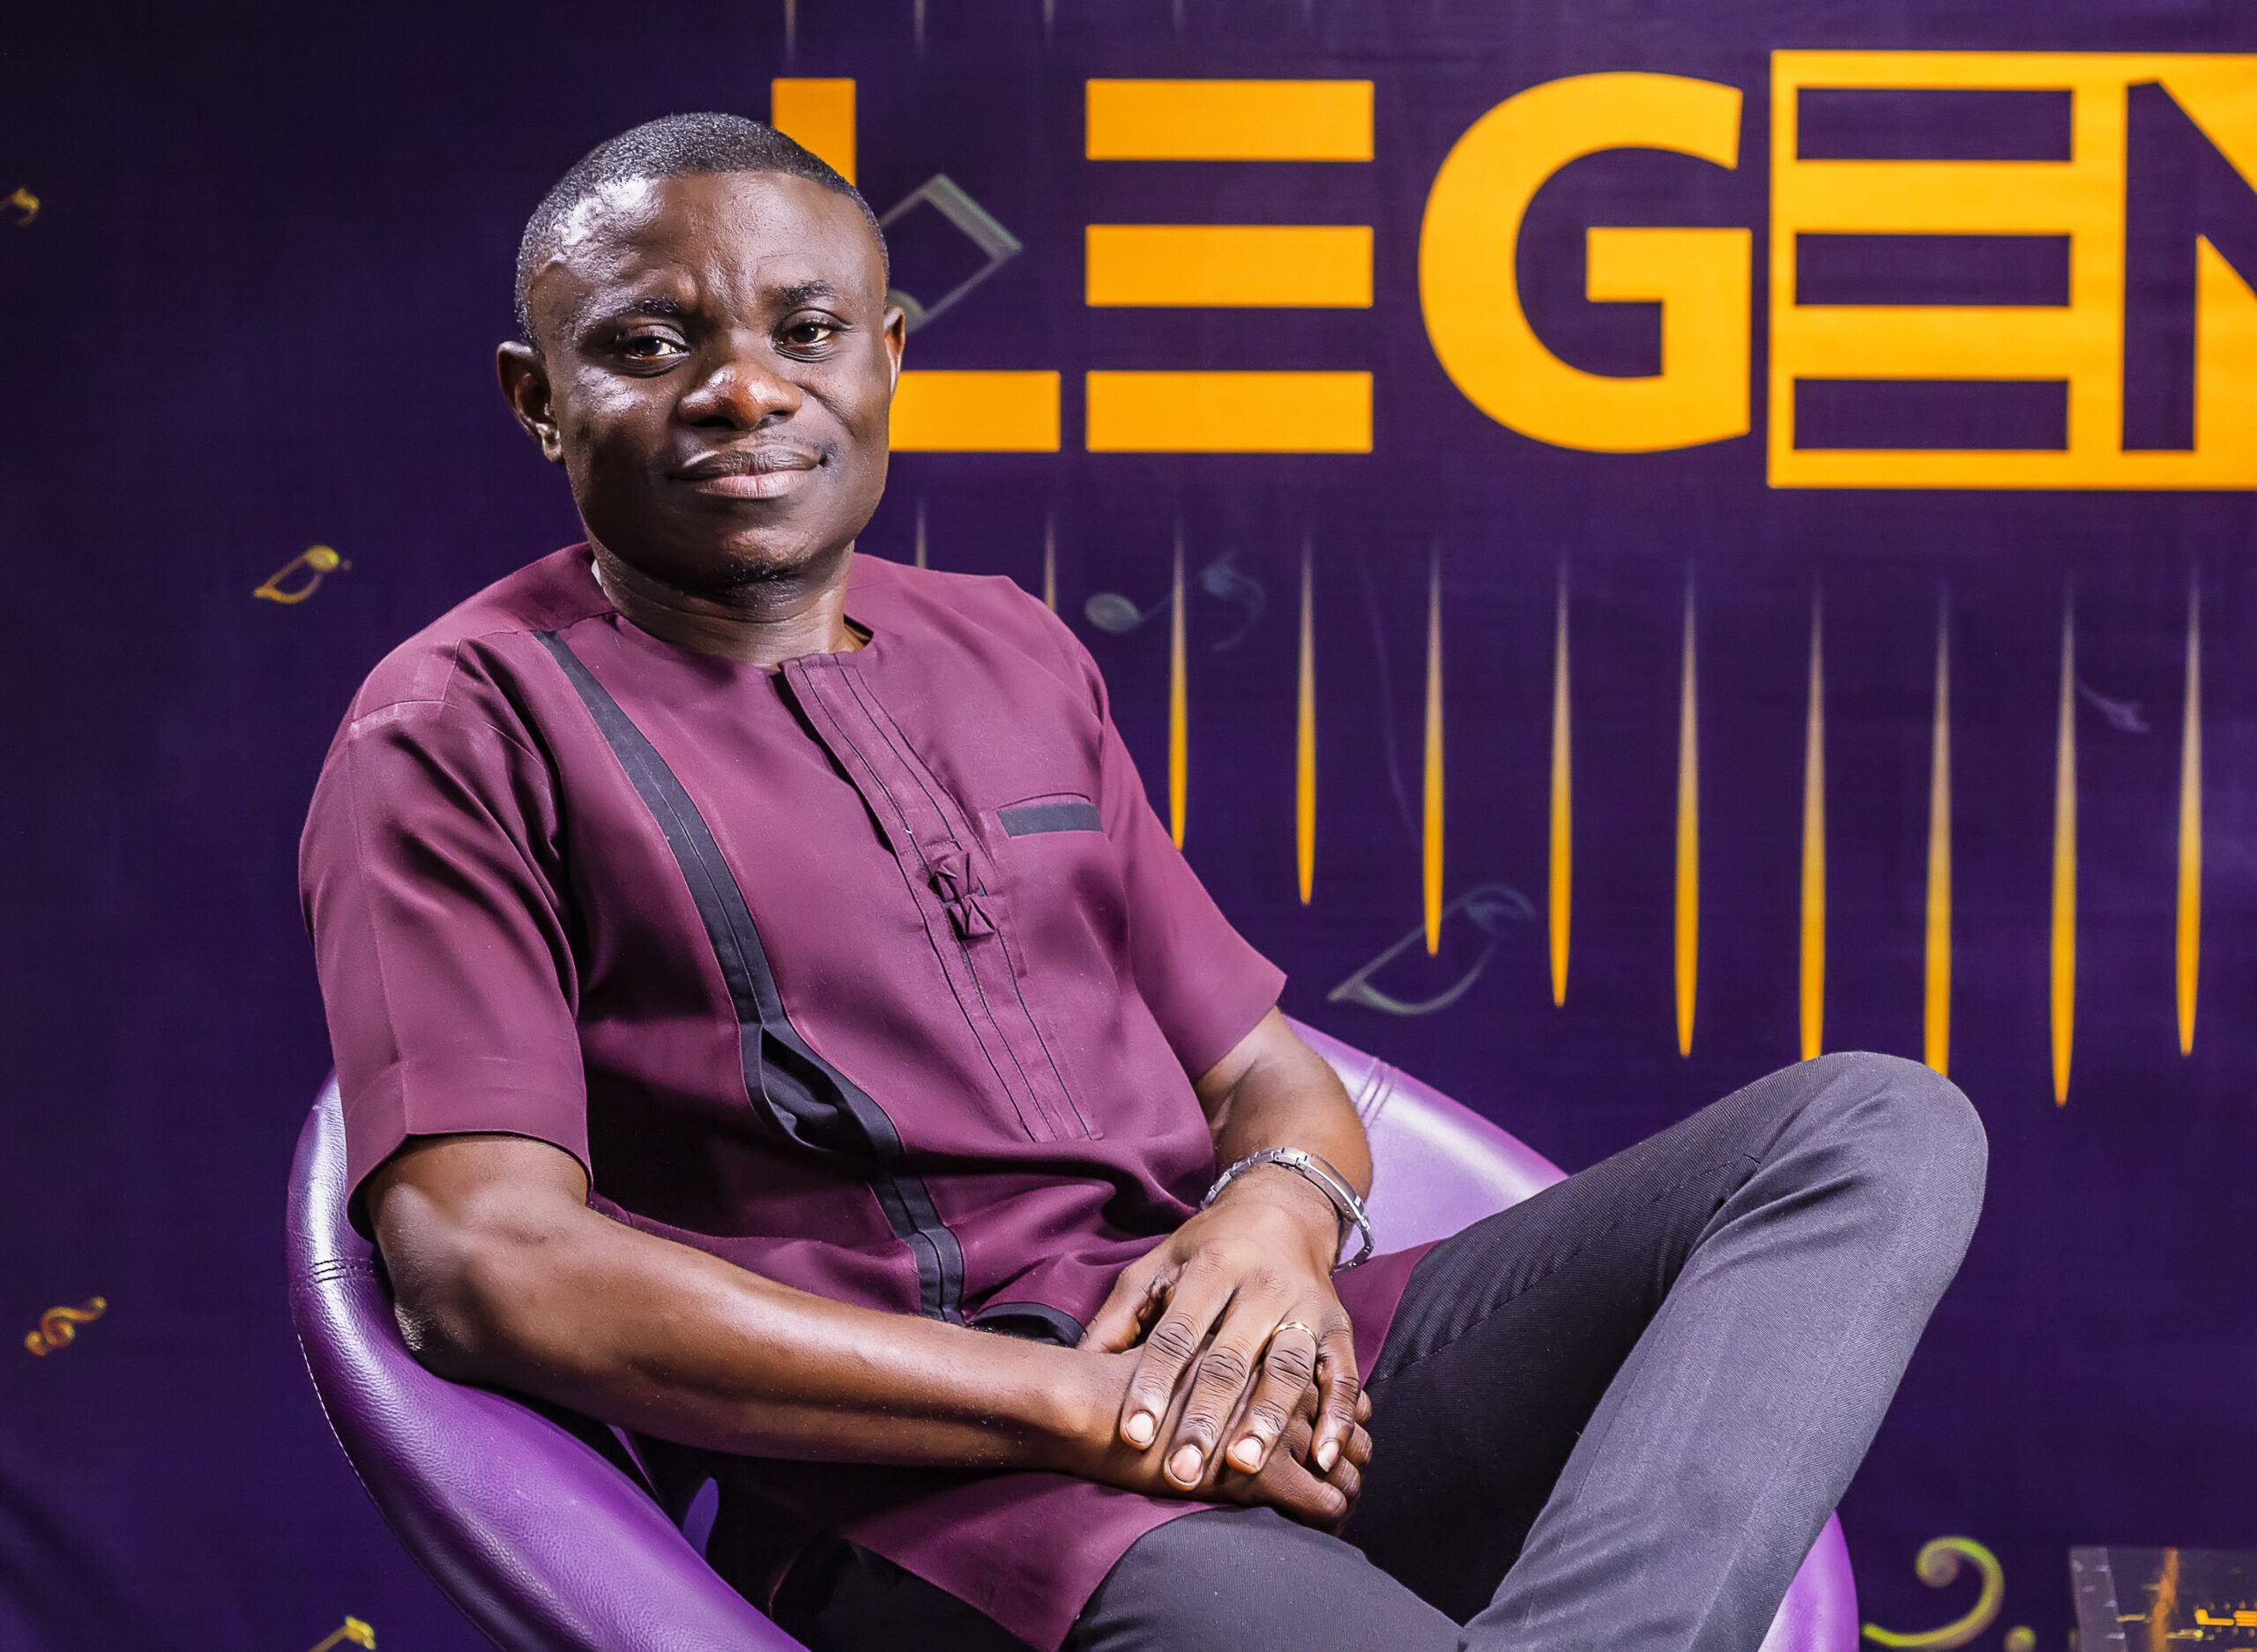 Photo of Agyemang Prempeh to host 'Legends' on TV XYZ